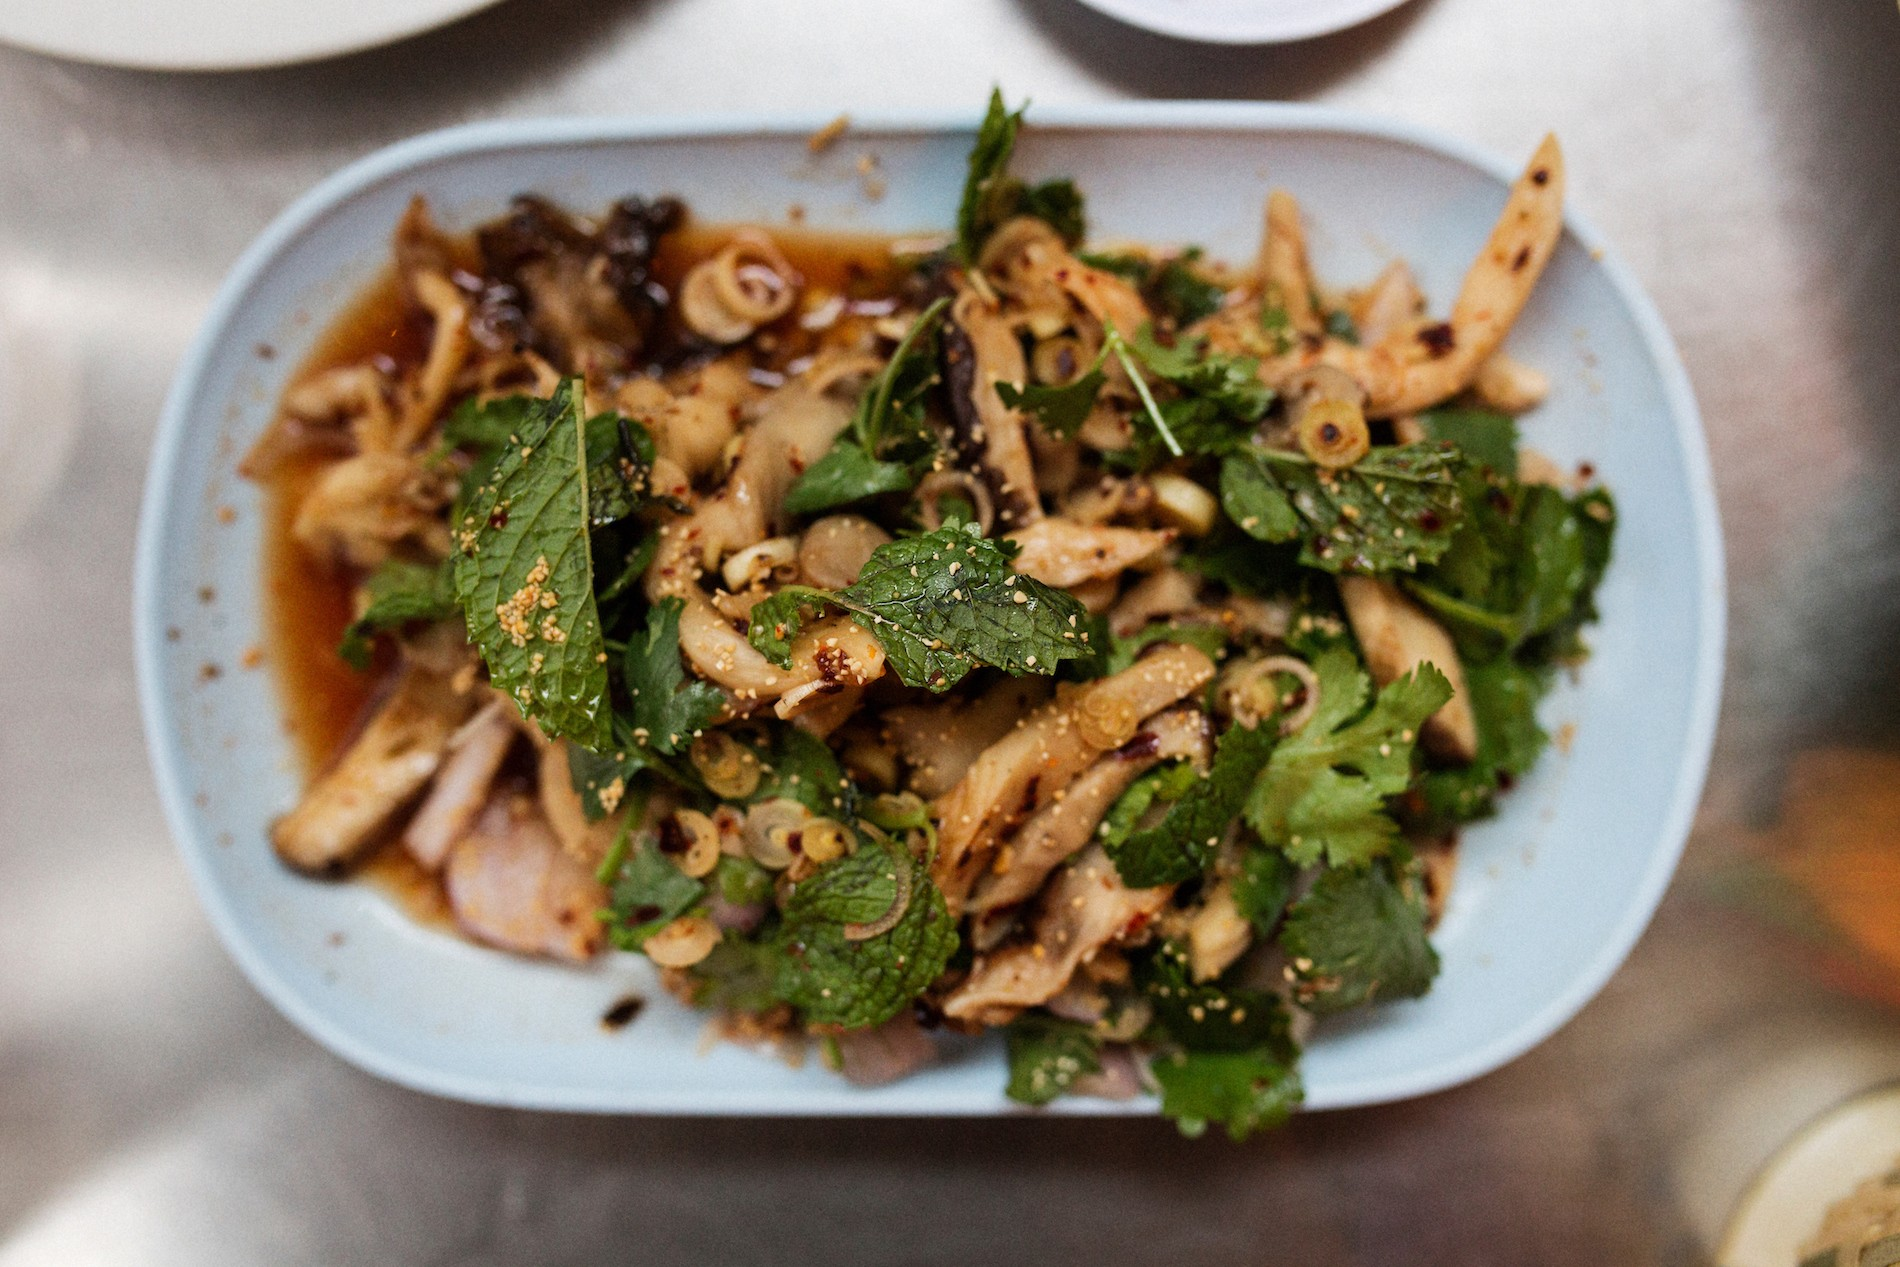 Het Paa Naam Tok Spicy forest mushroom salad with lime and chili powder dressing, shallots, lemongrass, mint, cilantro and toasted rice powder. Pok Pok PDX Mushrooms in Portland, Oregon. August 2016. Matt Lutton / Boreal Collective for Vice Munchies